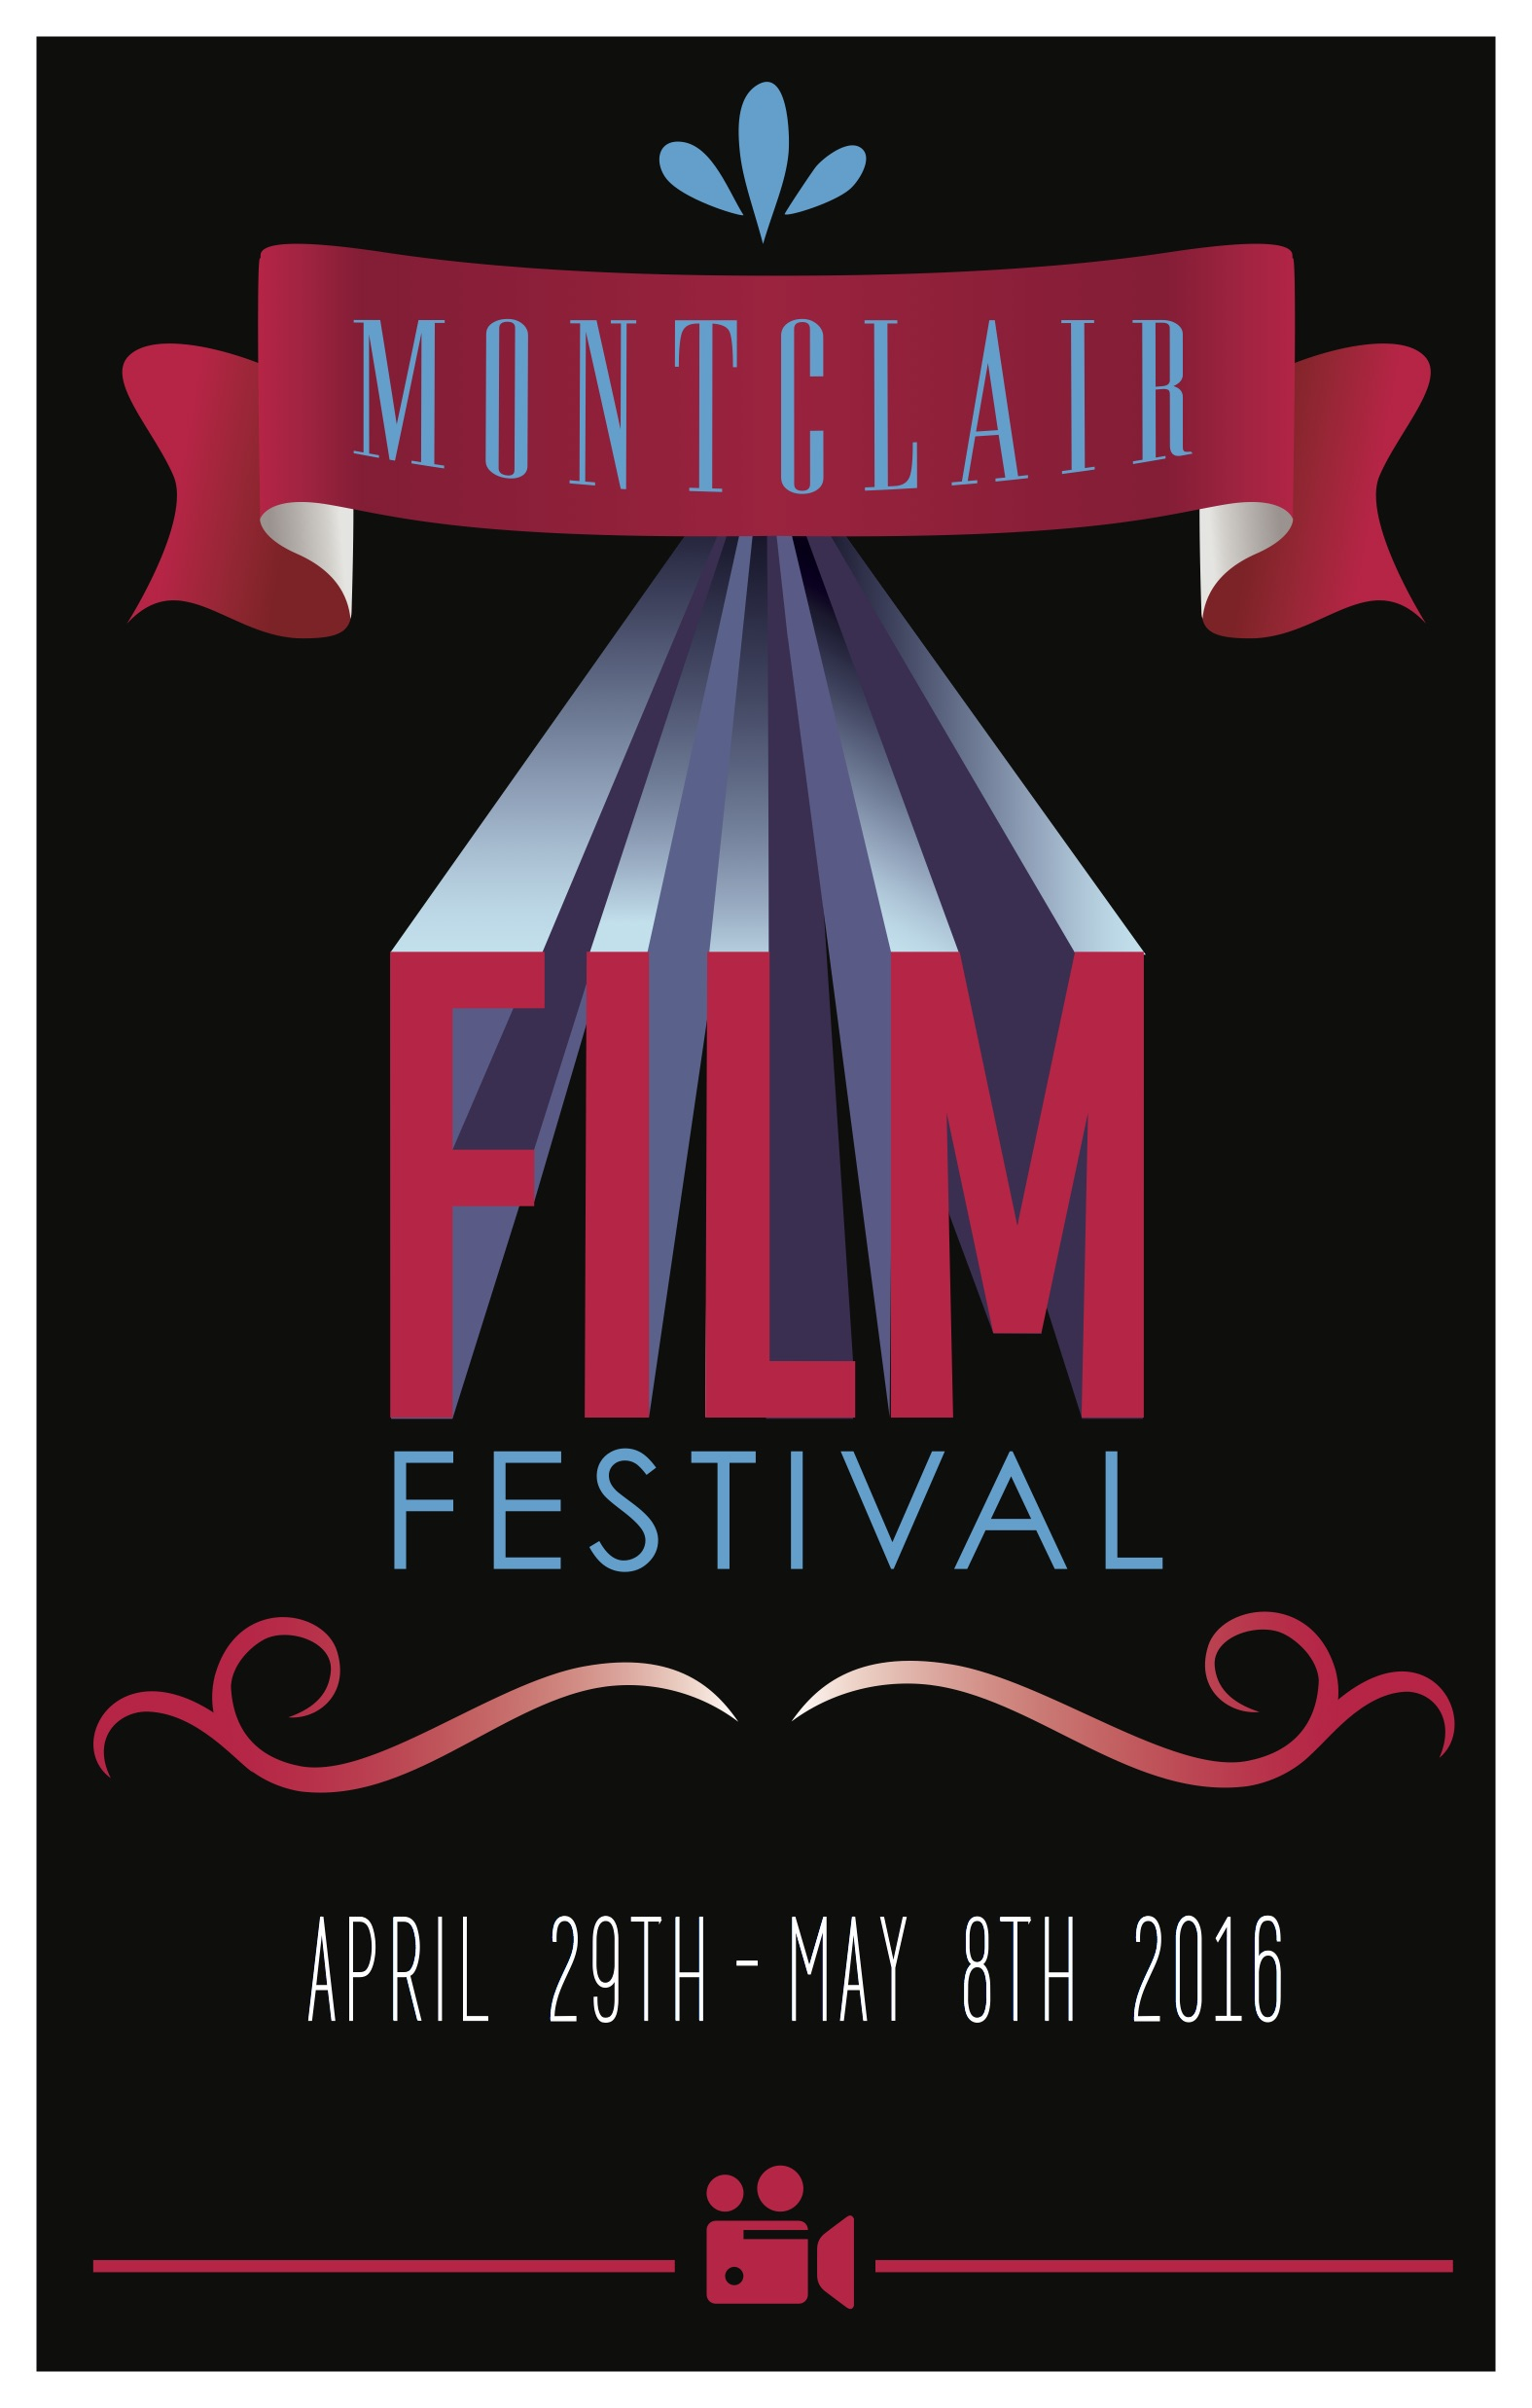 Montclair Film Festival copy.jpg